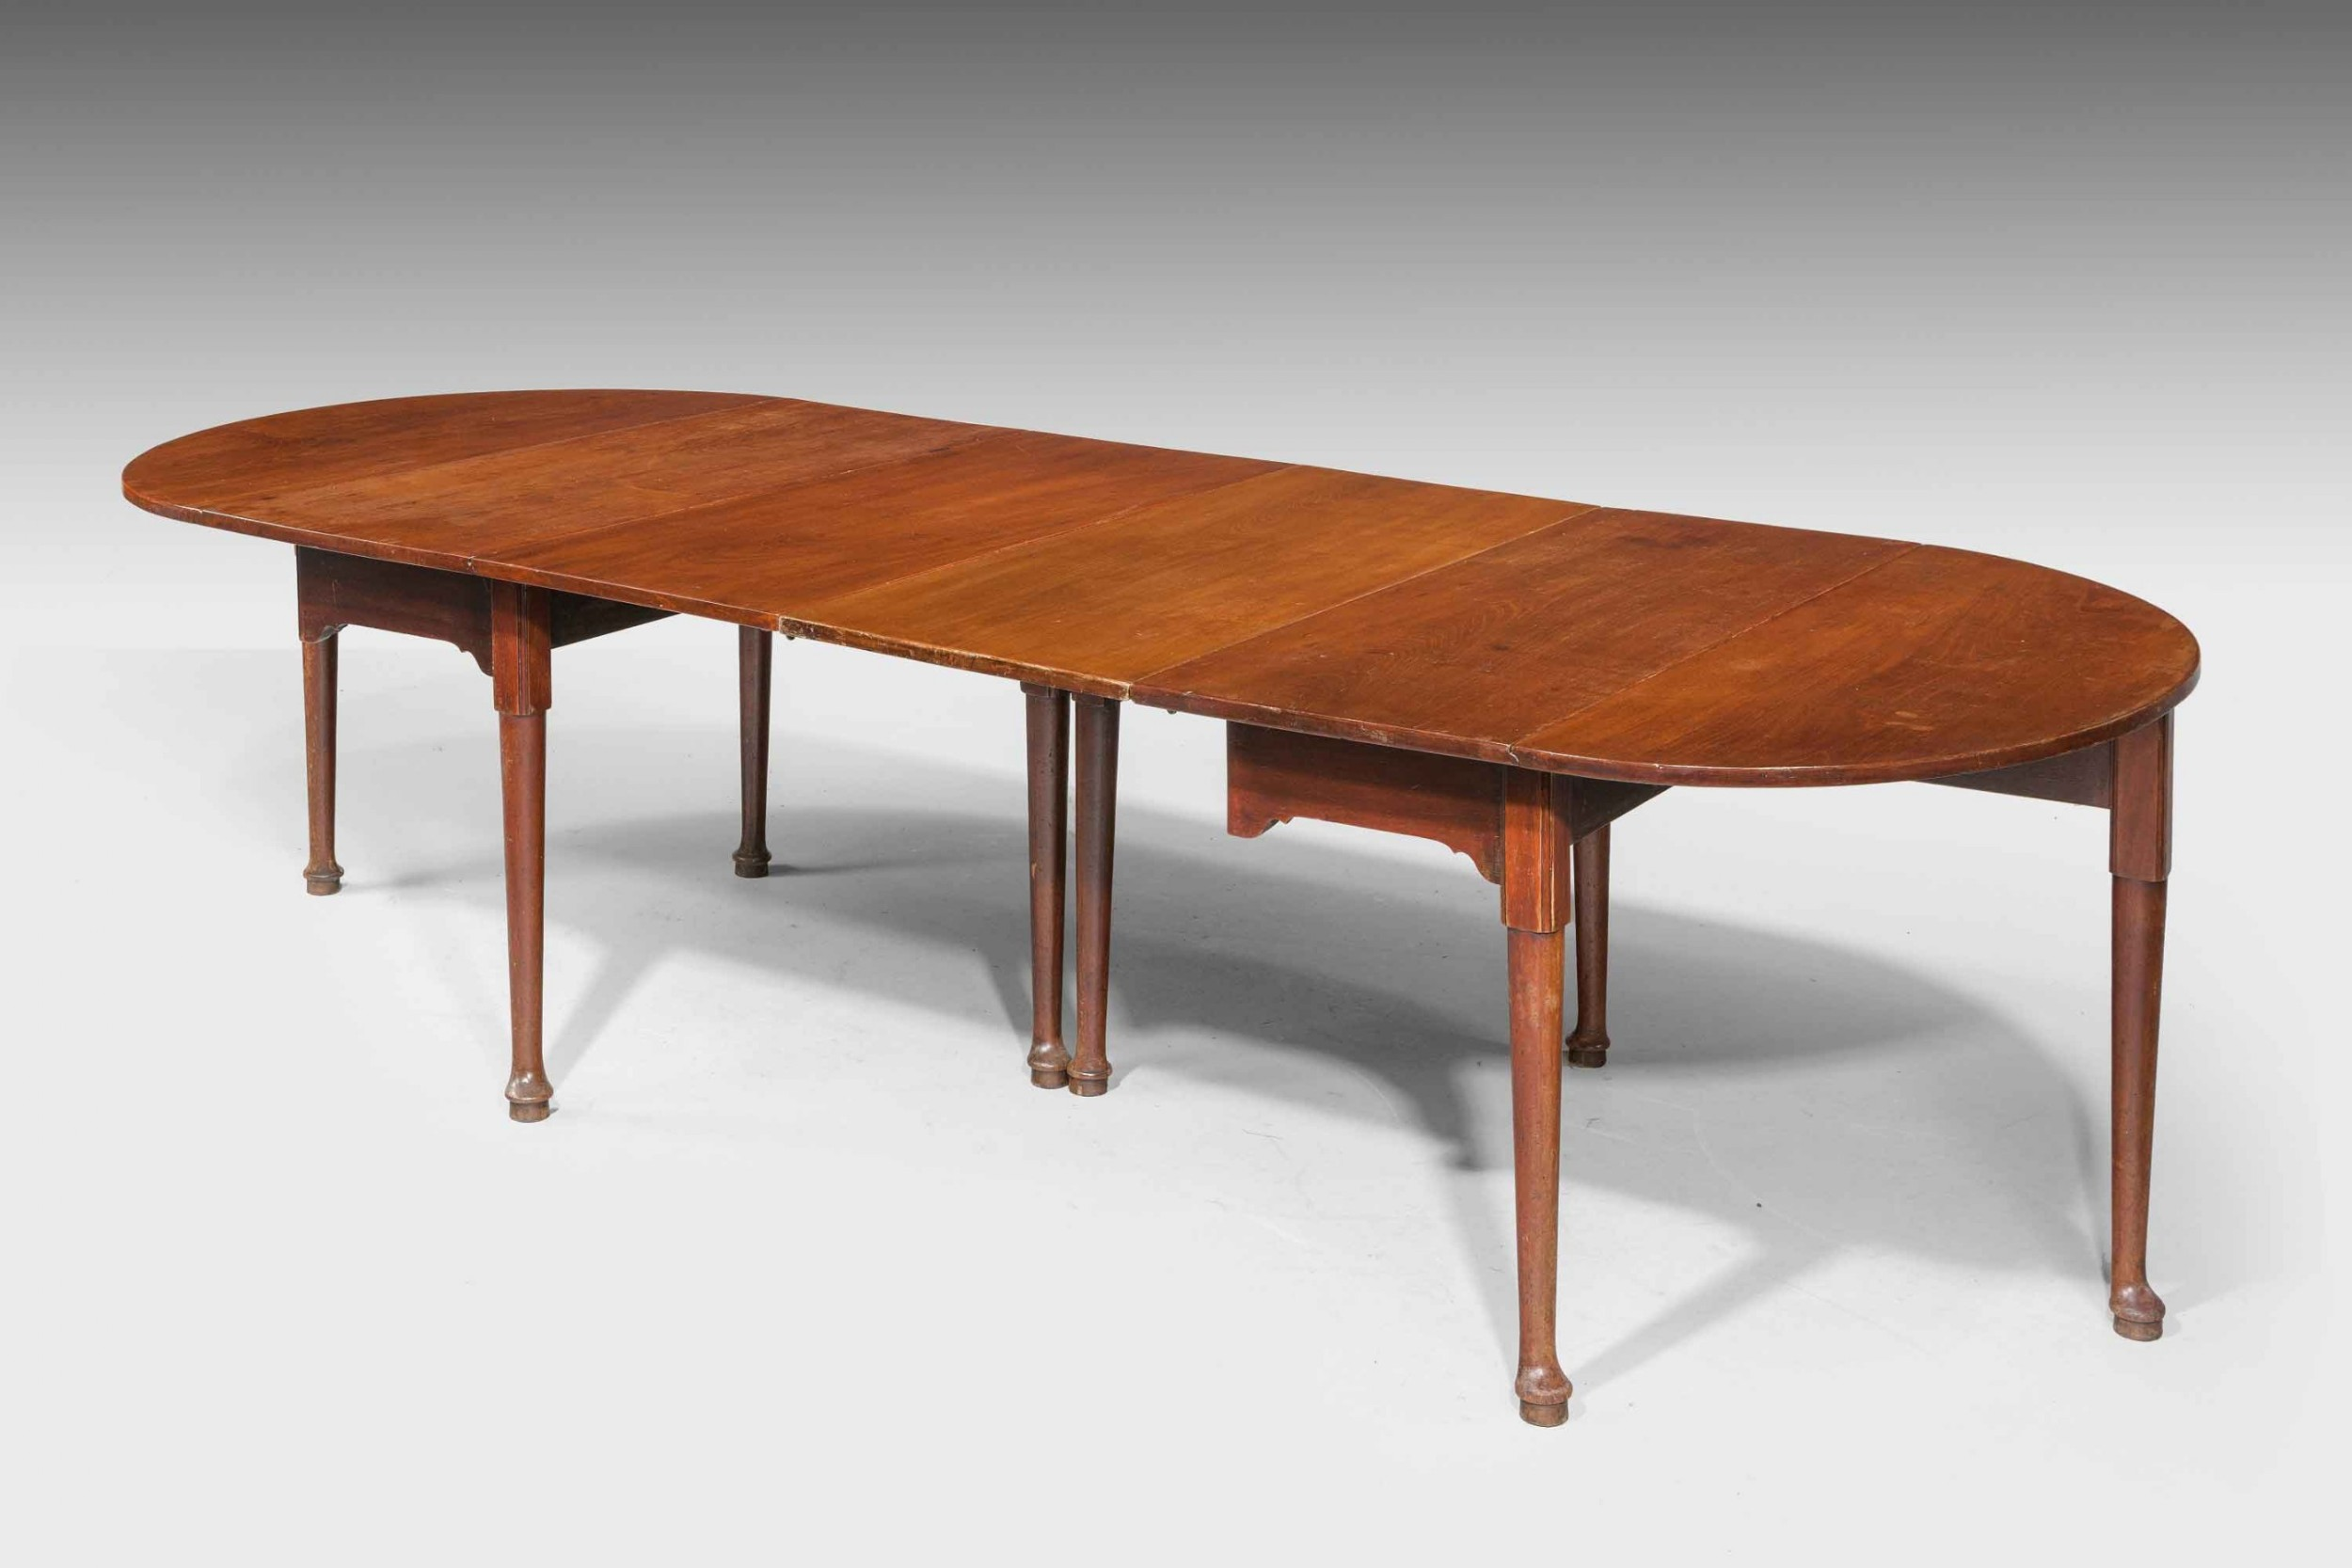 early george iii period mahogany dining table